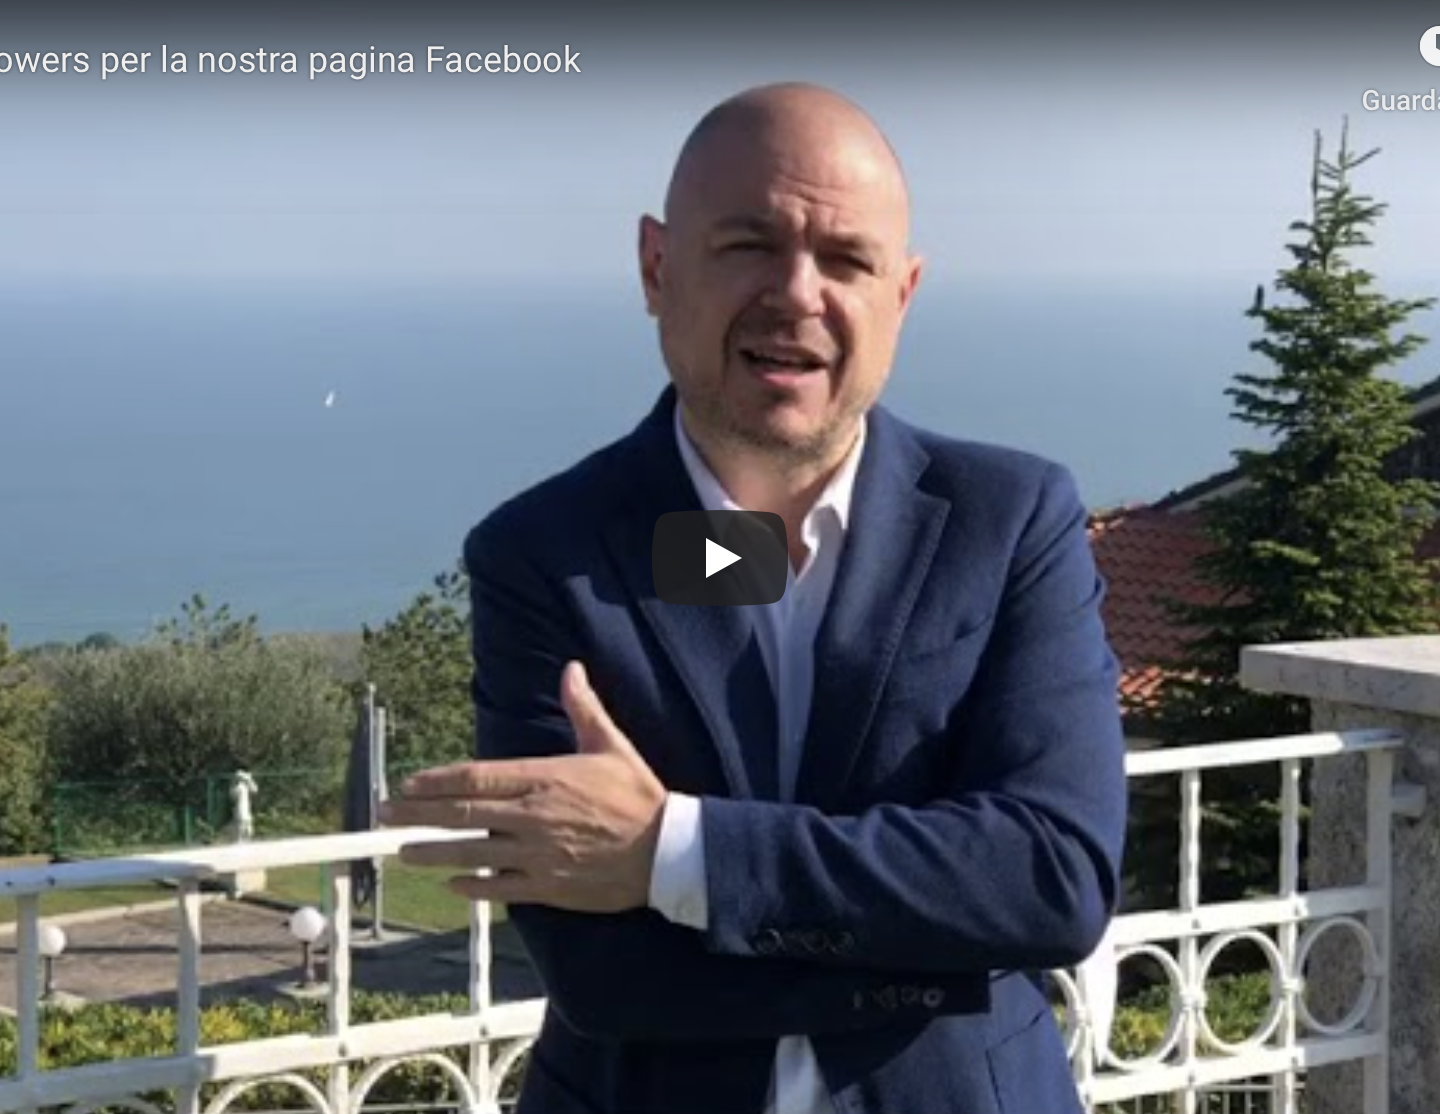 7.000 followers per la nostra pagina Facebook